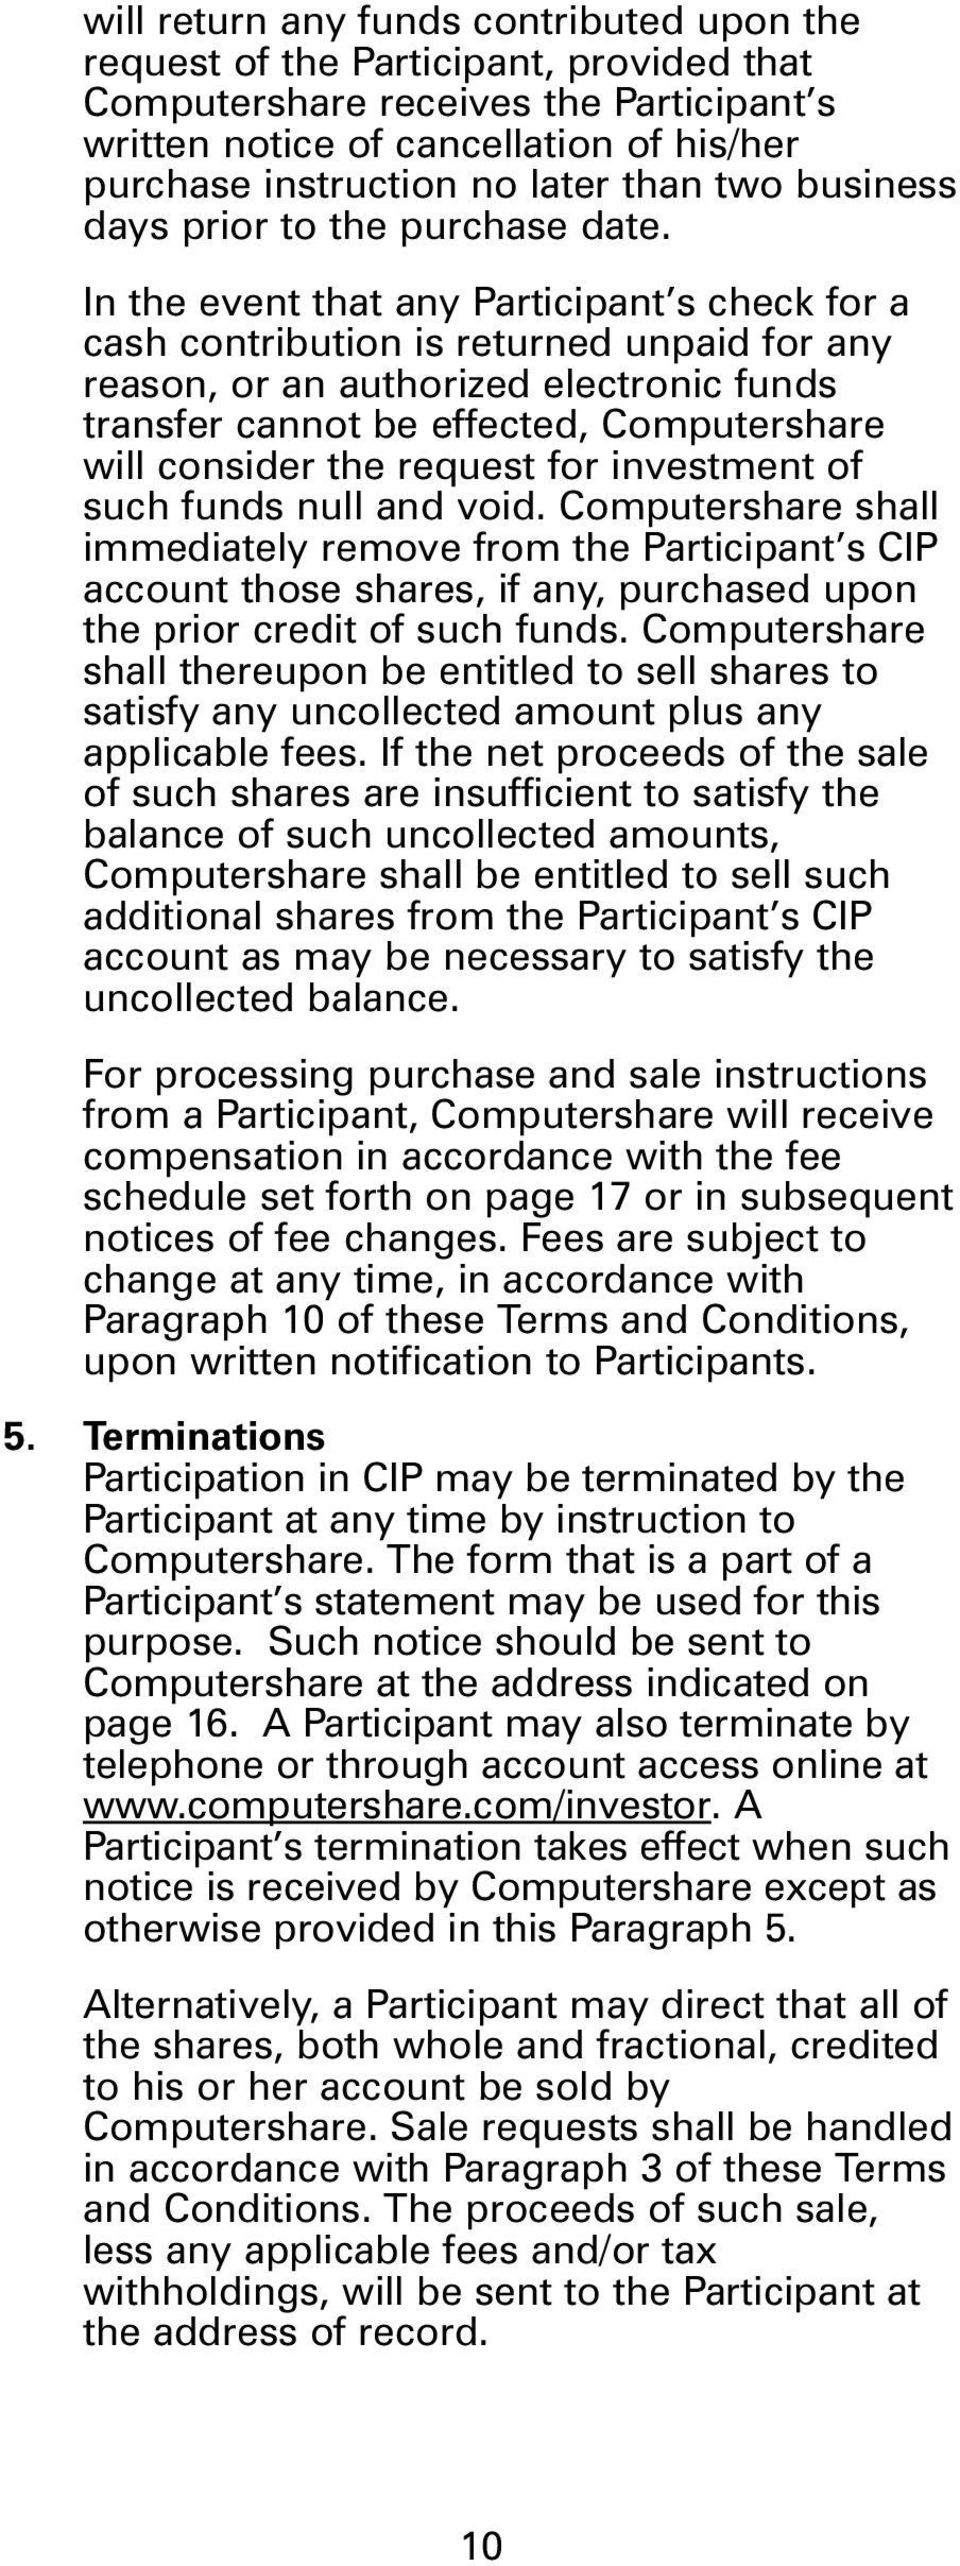 In the event that any Participant s check for a cash contribution is returned unpaid for any reason, or an authorized electronic funds transfer cannot be effected, Computershare will consider the